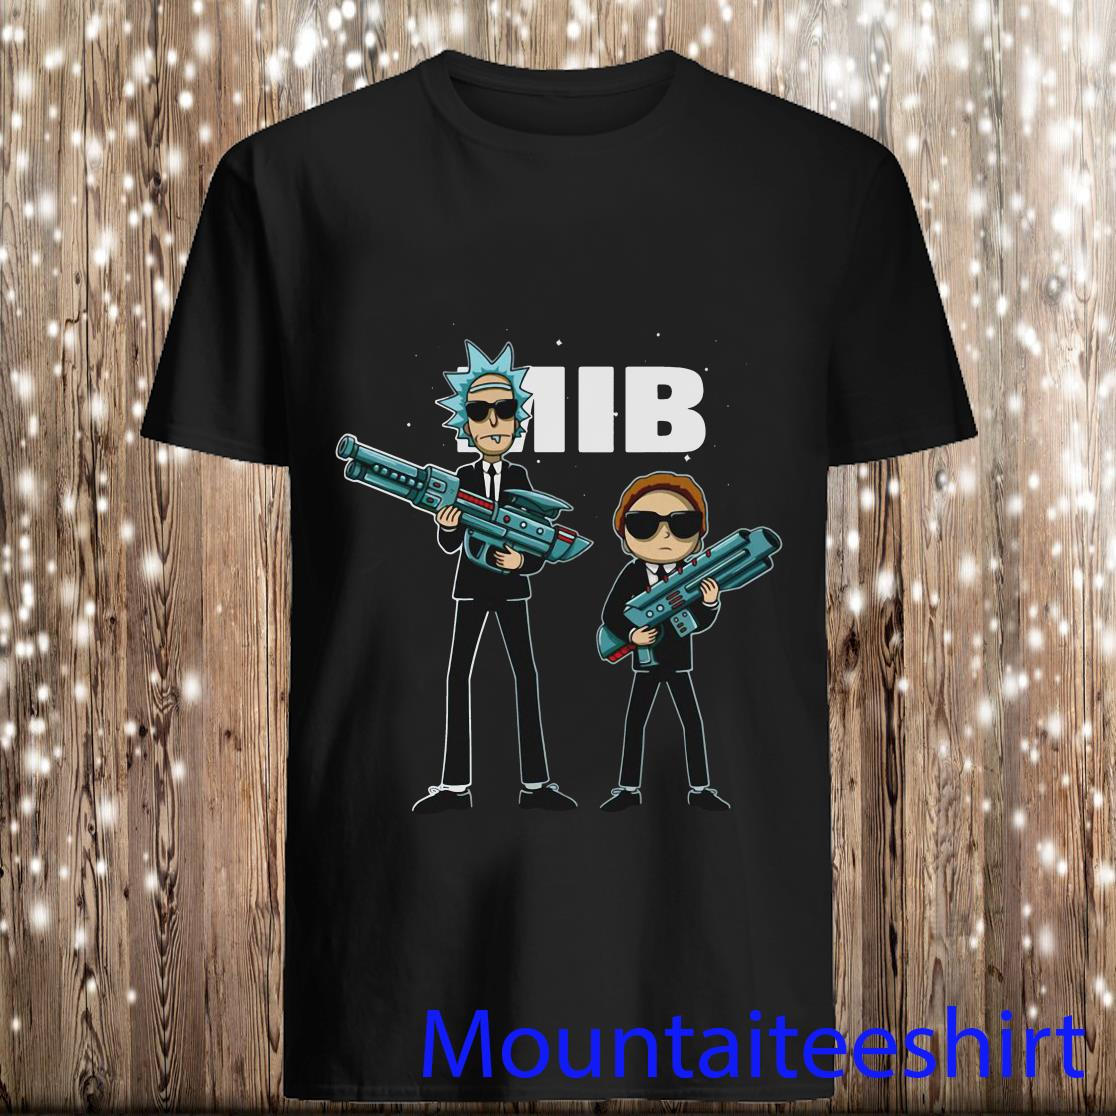 Rick and Morty MIB Movie Parody Shirt